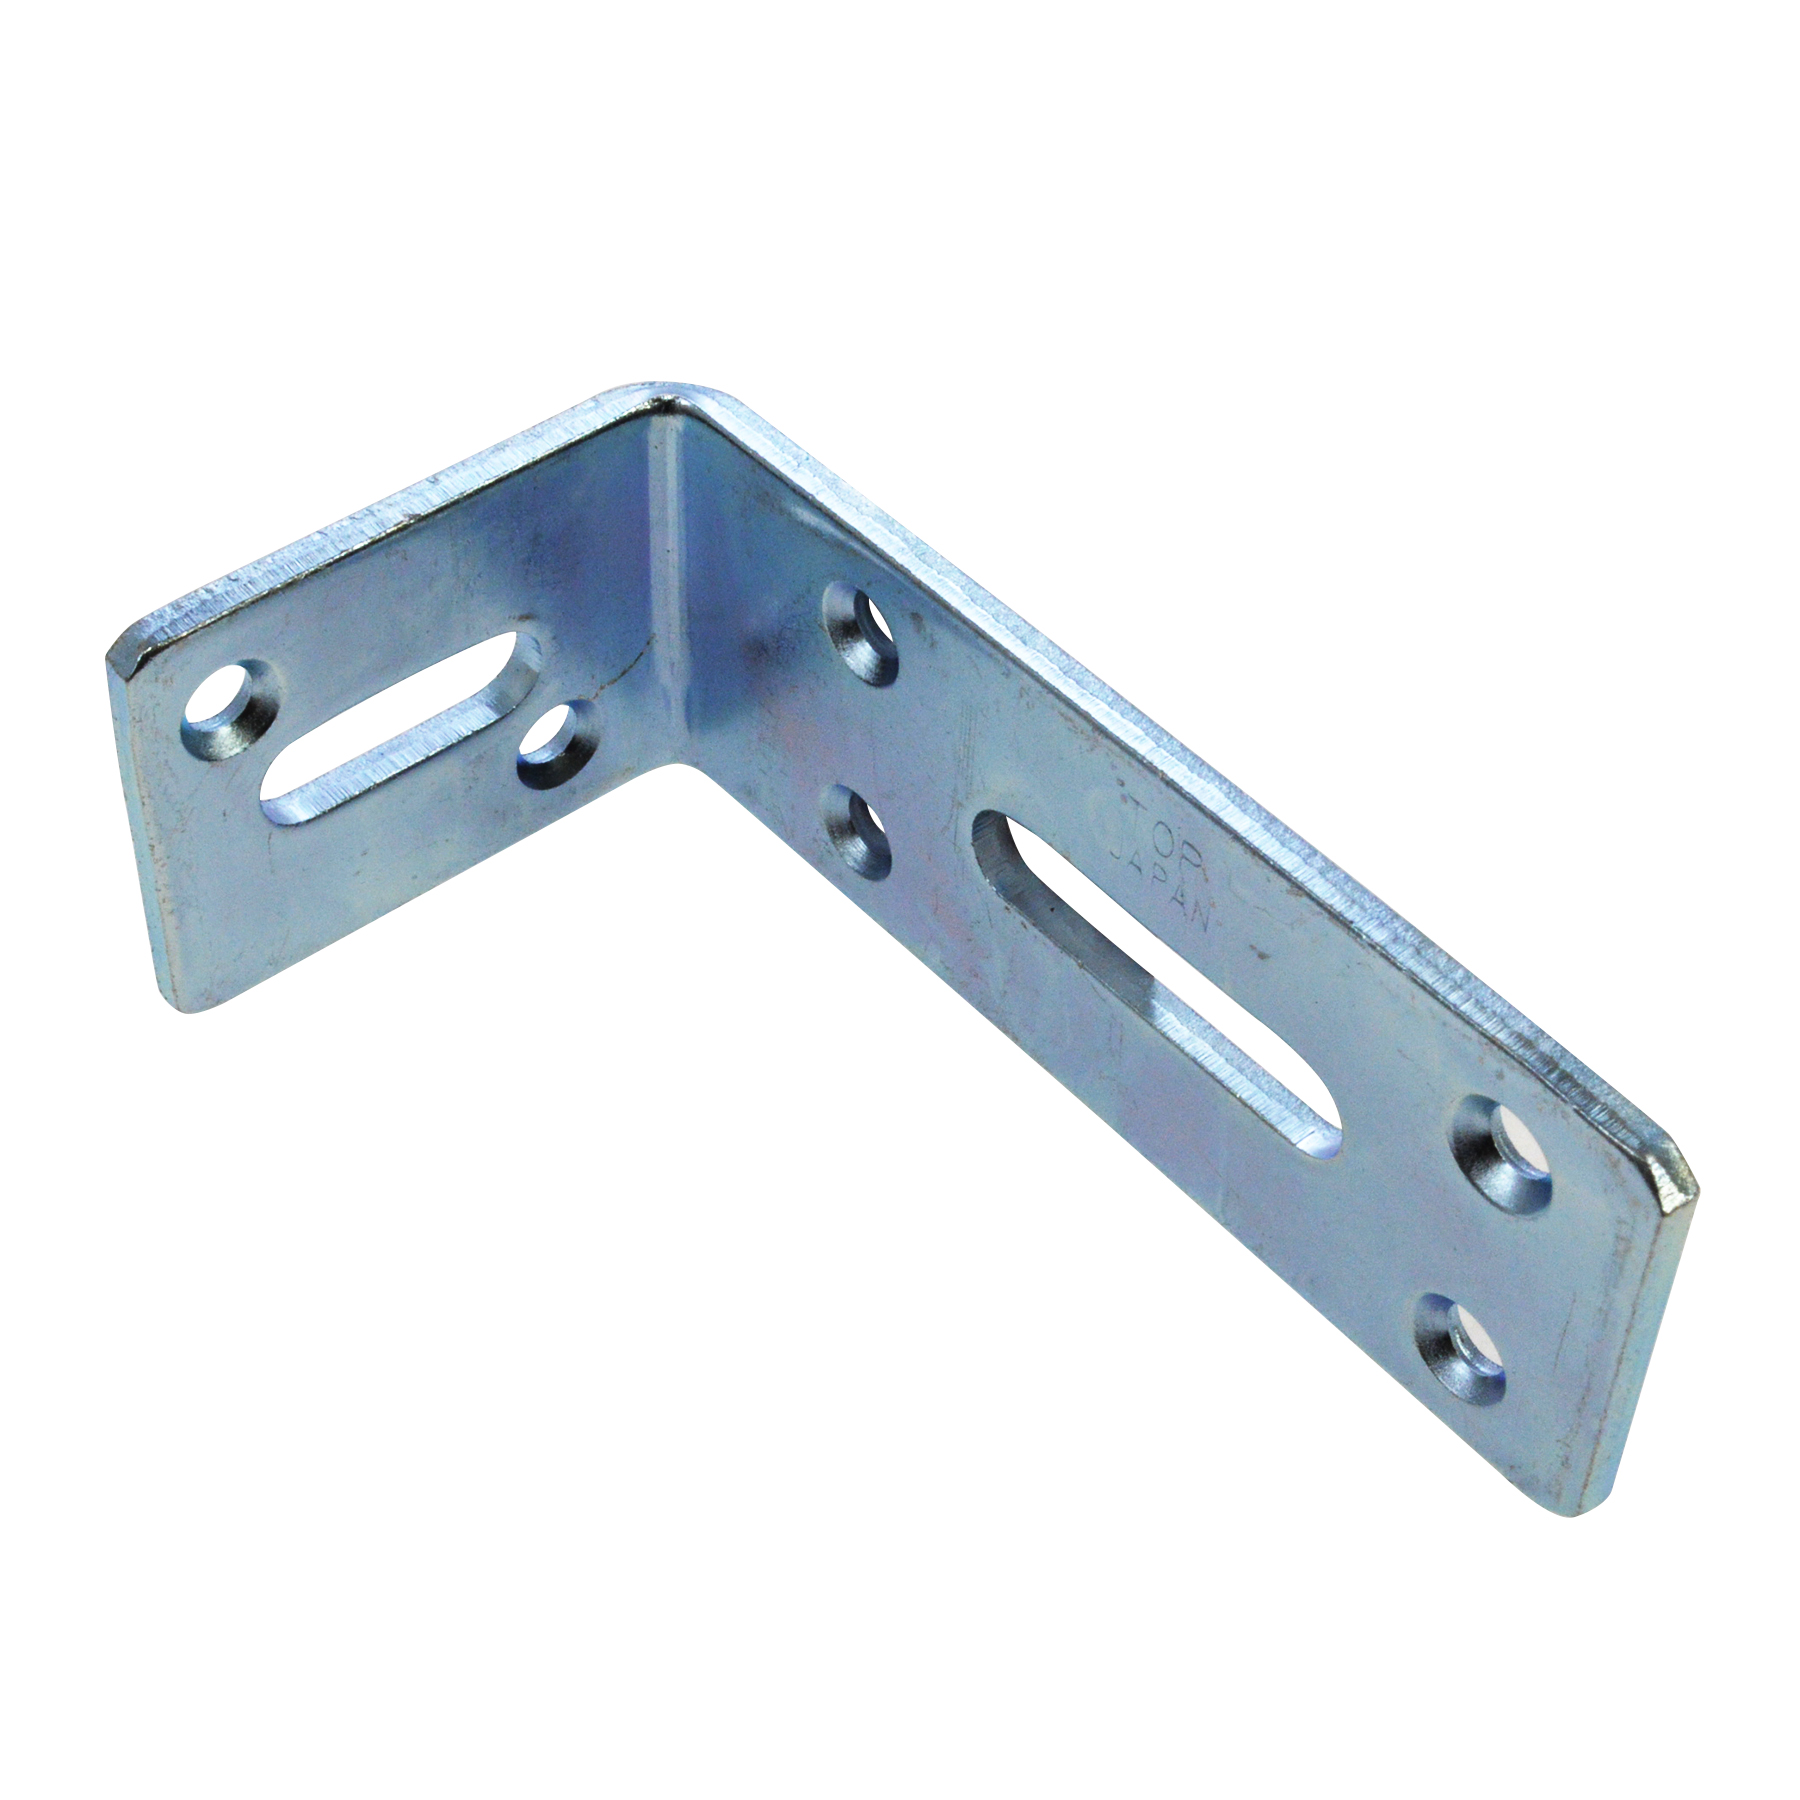 L-Shaped Hardware